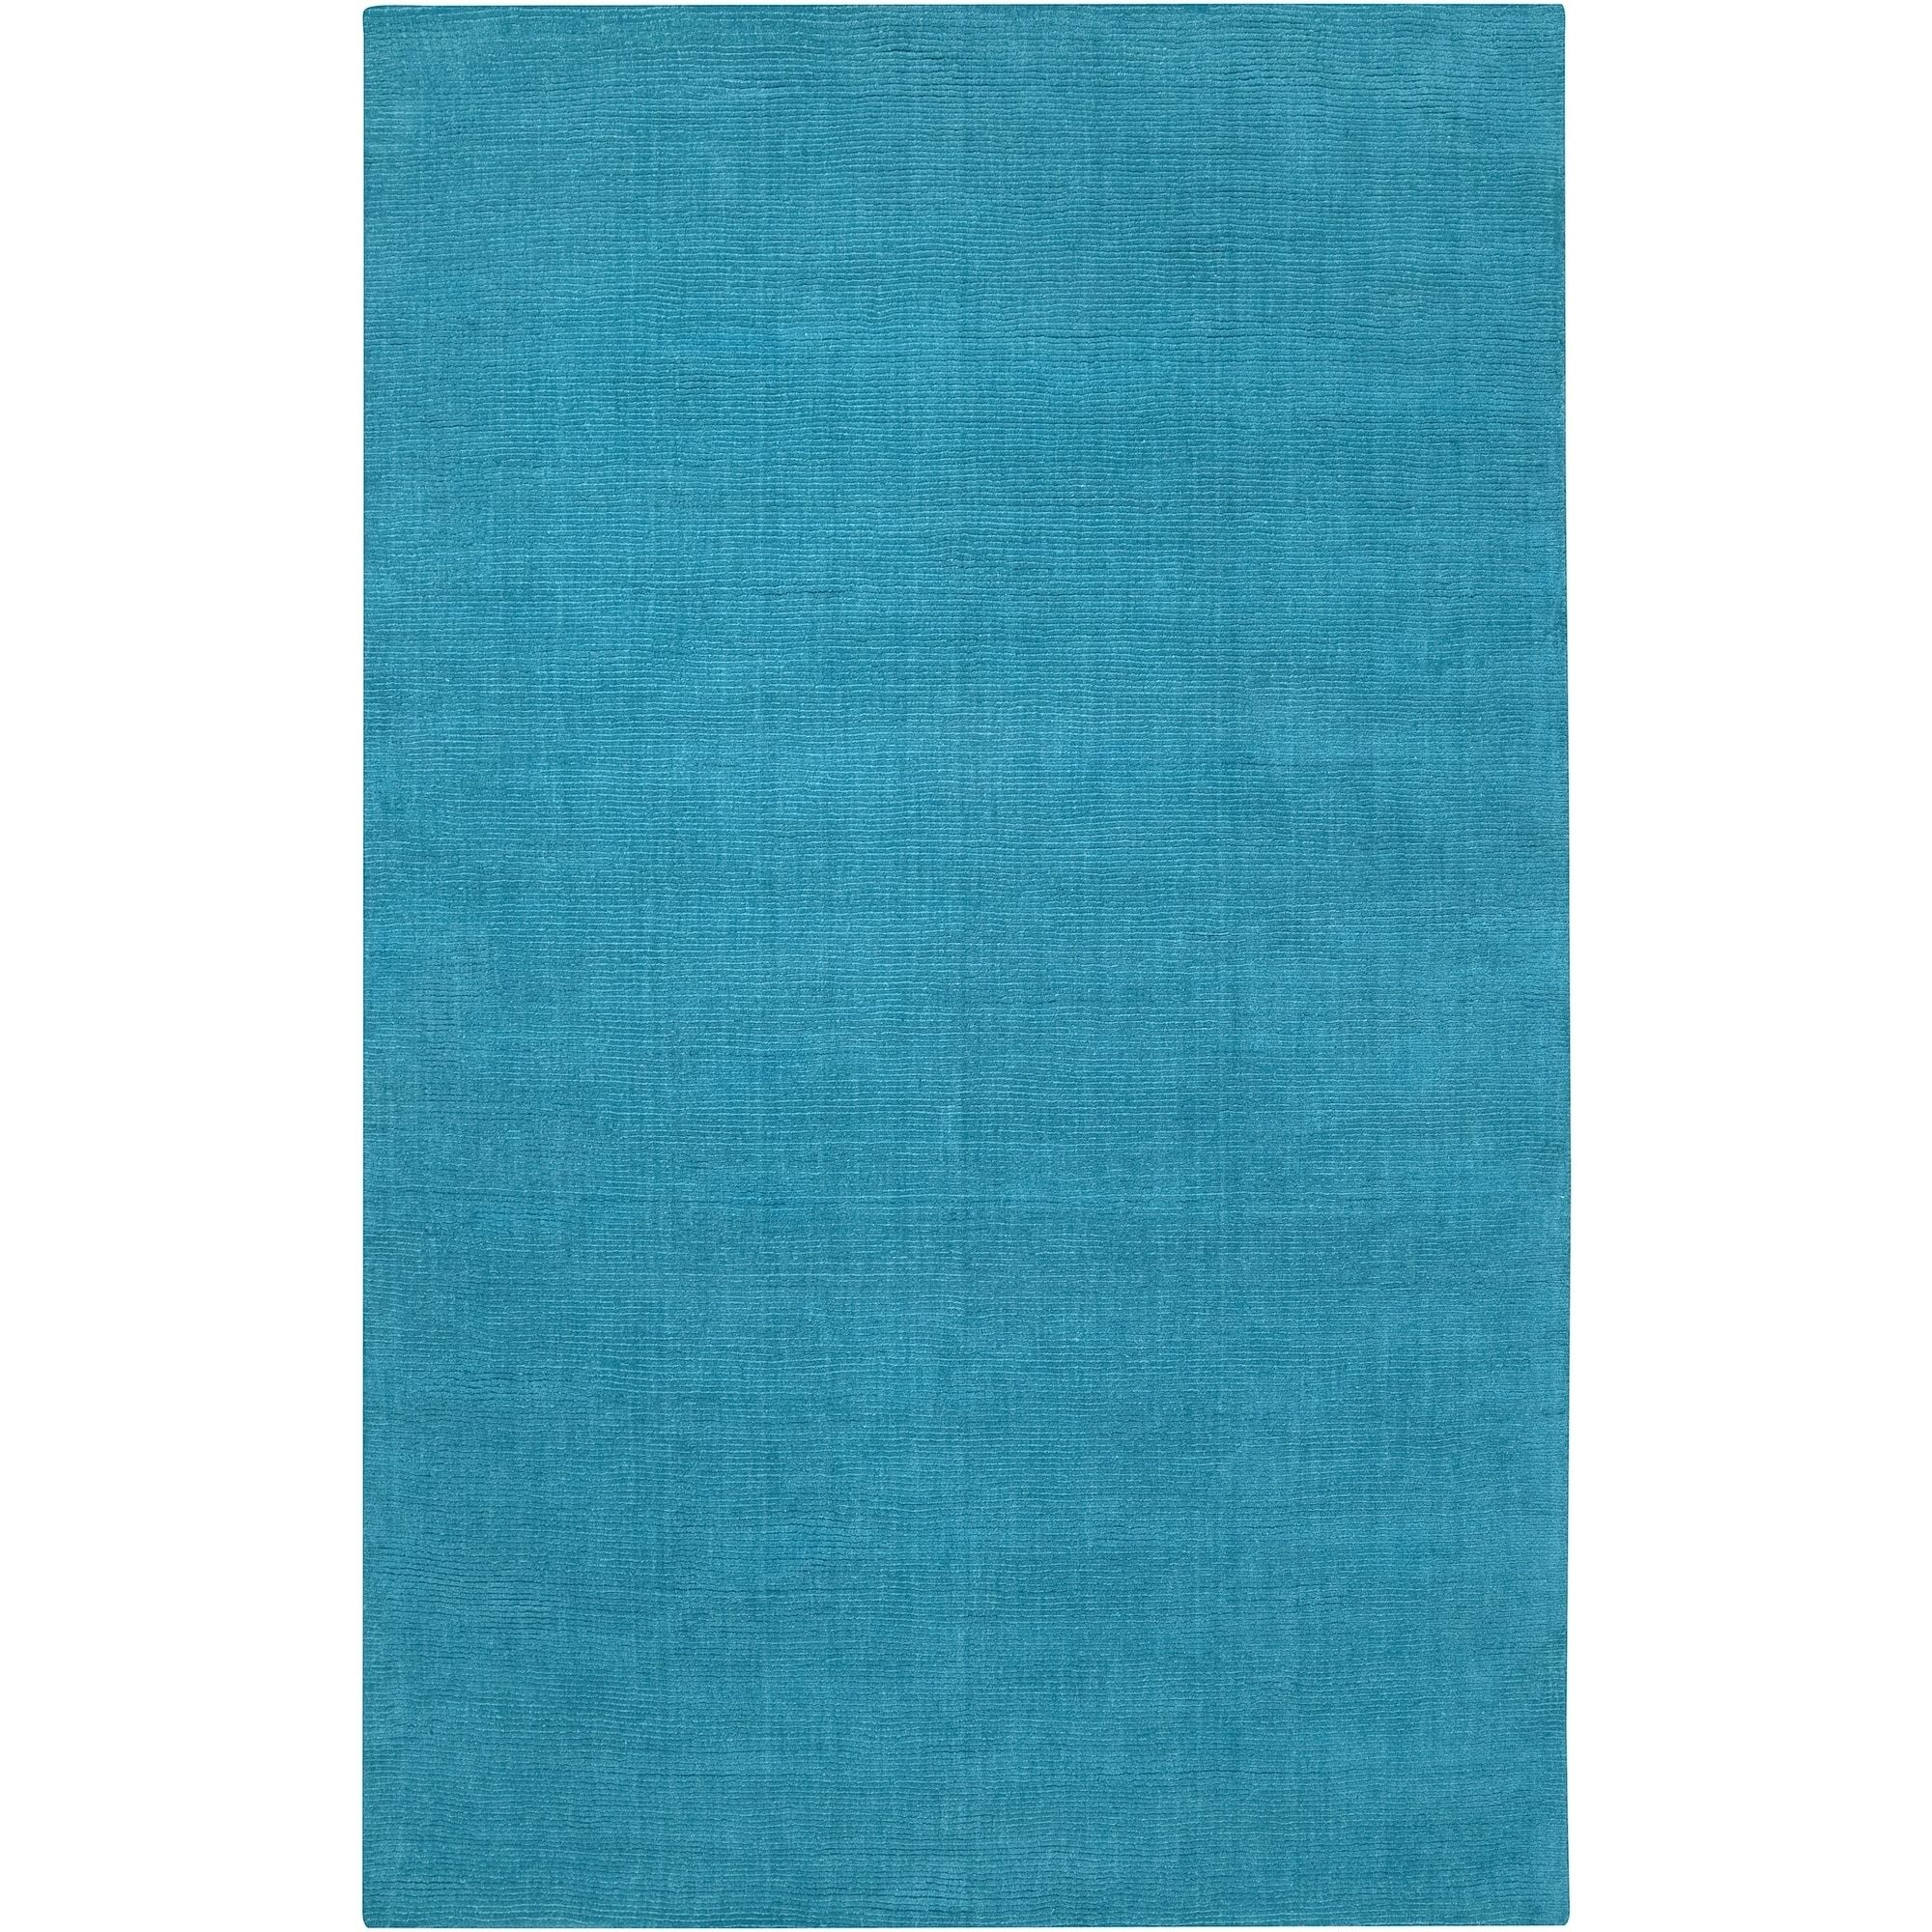 Hand Crafted Teal Blue Solid Casual Ridges Wool Area Rug 7 6 X 9 6 Surplus Wool Area Rugs Colorful Rugs Teal Rug